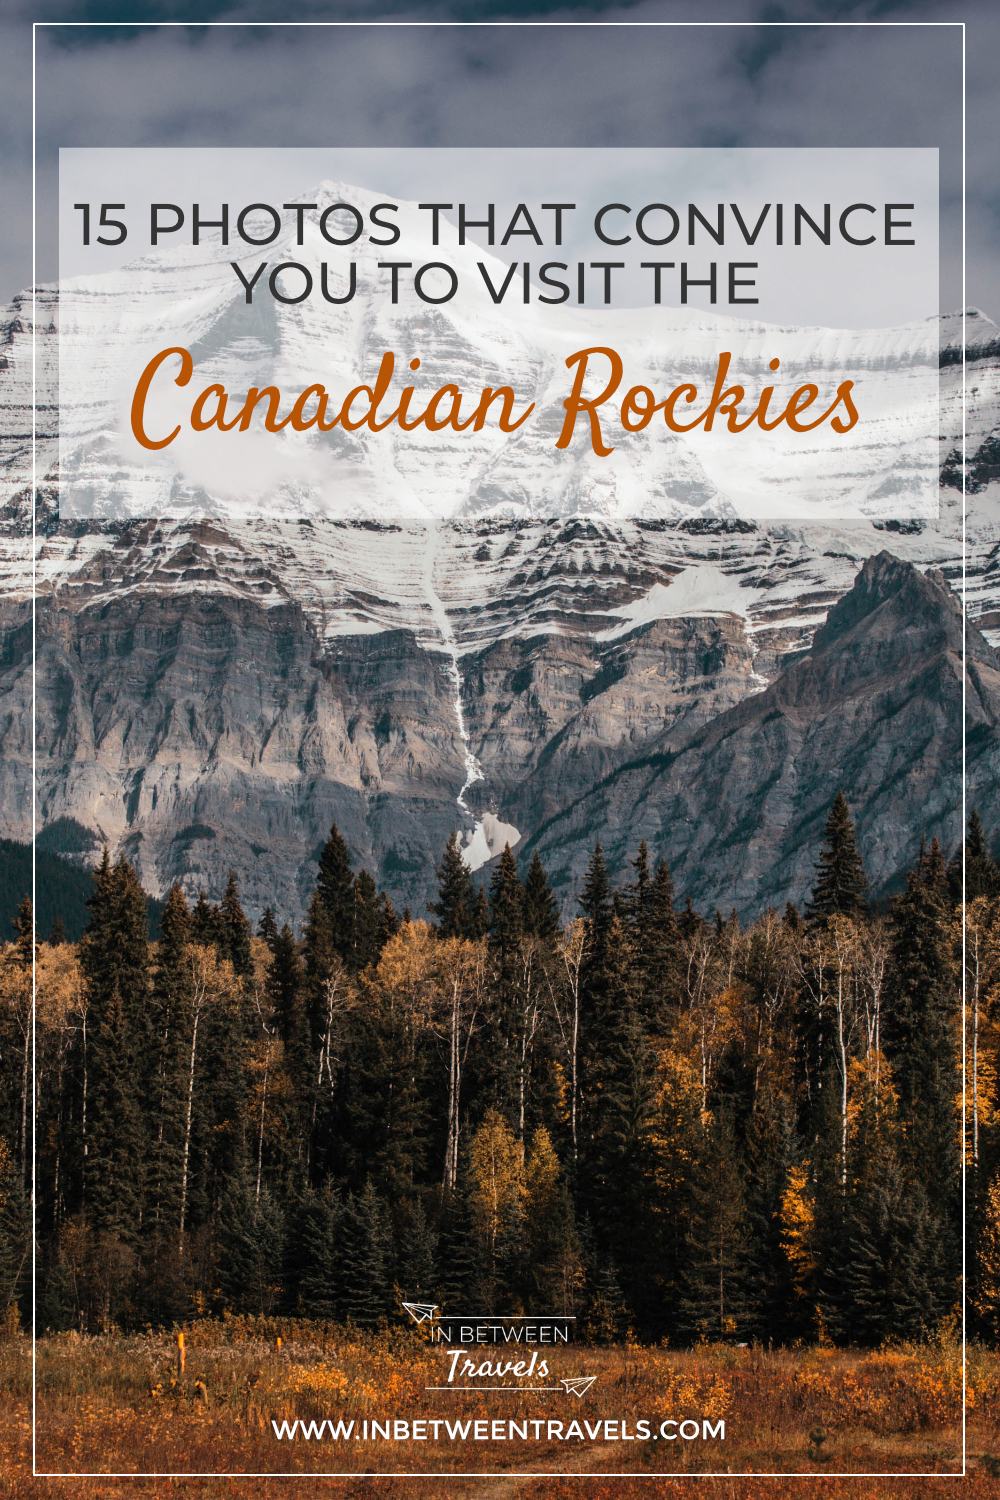 Canada's nature in 15 photos - Convincing you to visit the Canadian Rockies